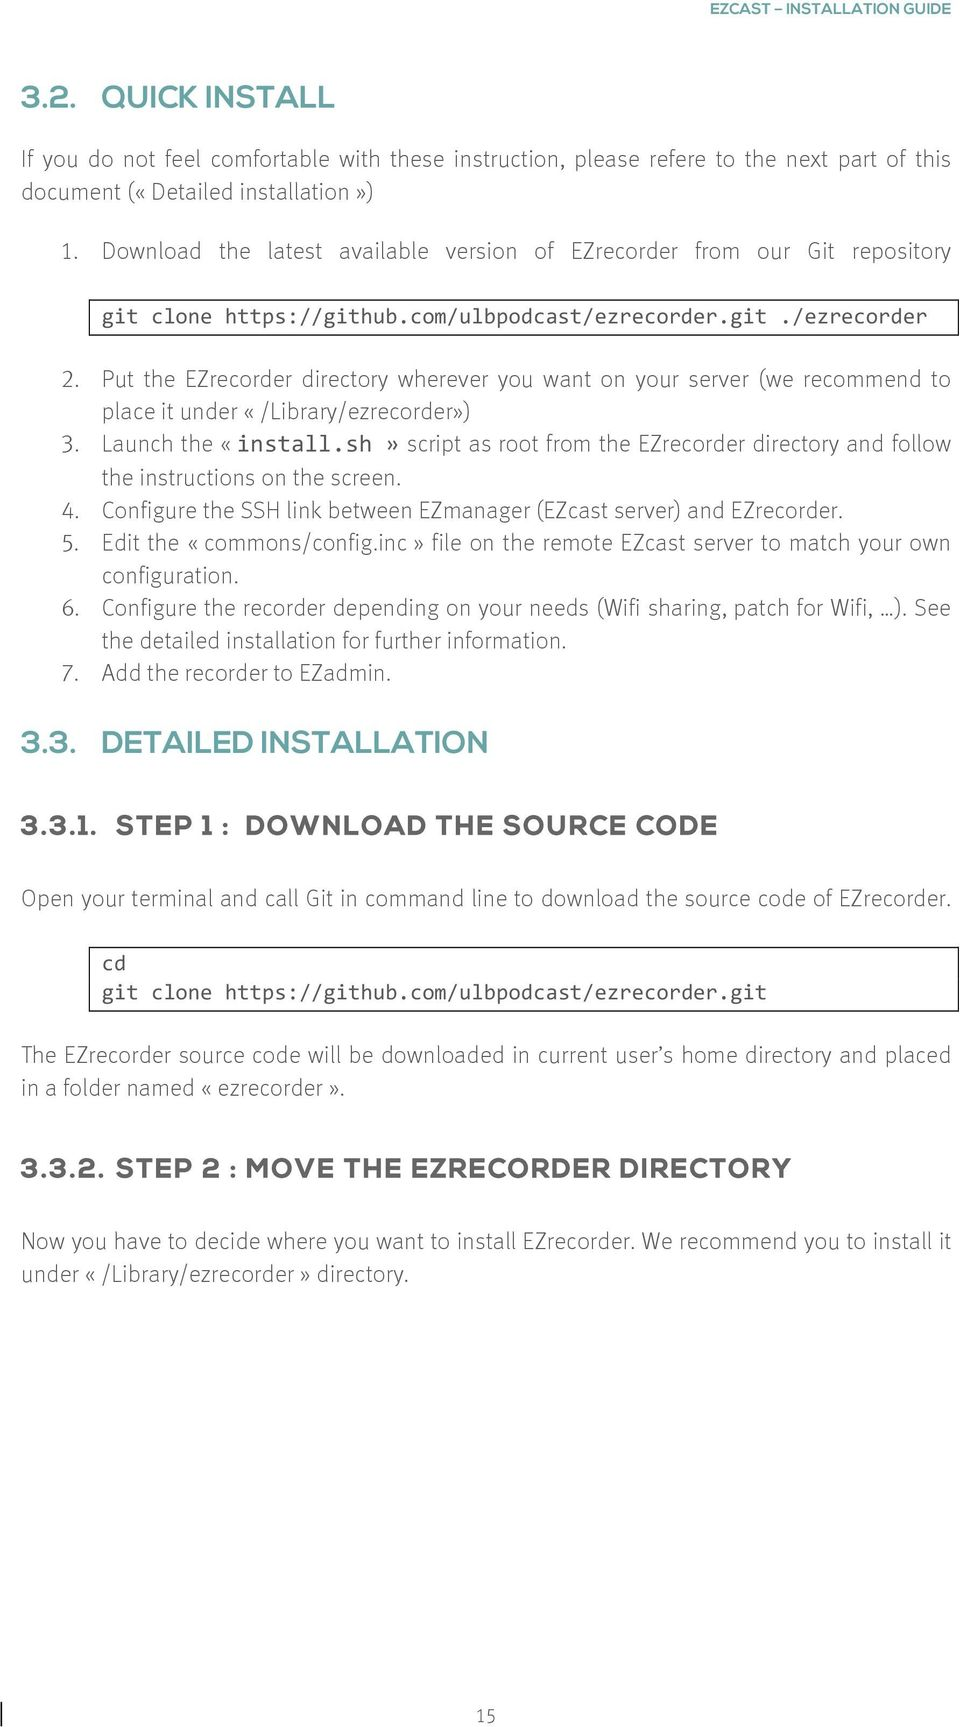 Put the EZrecorder directory wherever you want on your server (we recommend to place it under «/Library/ezrecorder») 3. Launch the «install.